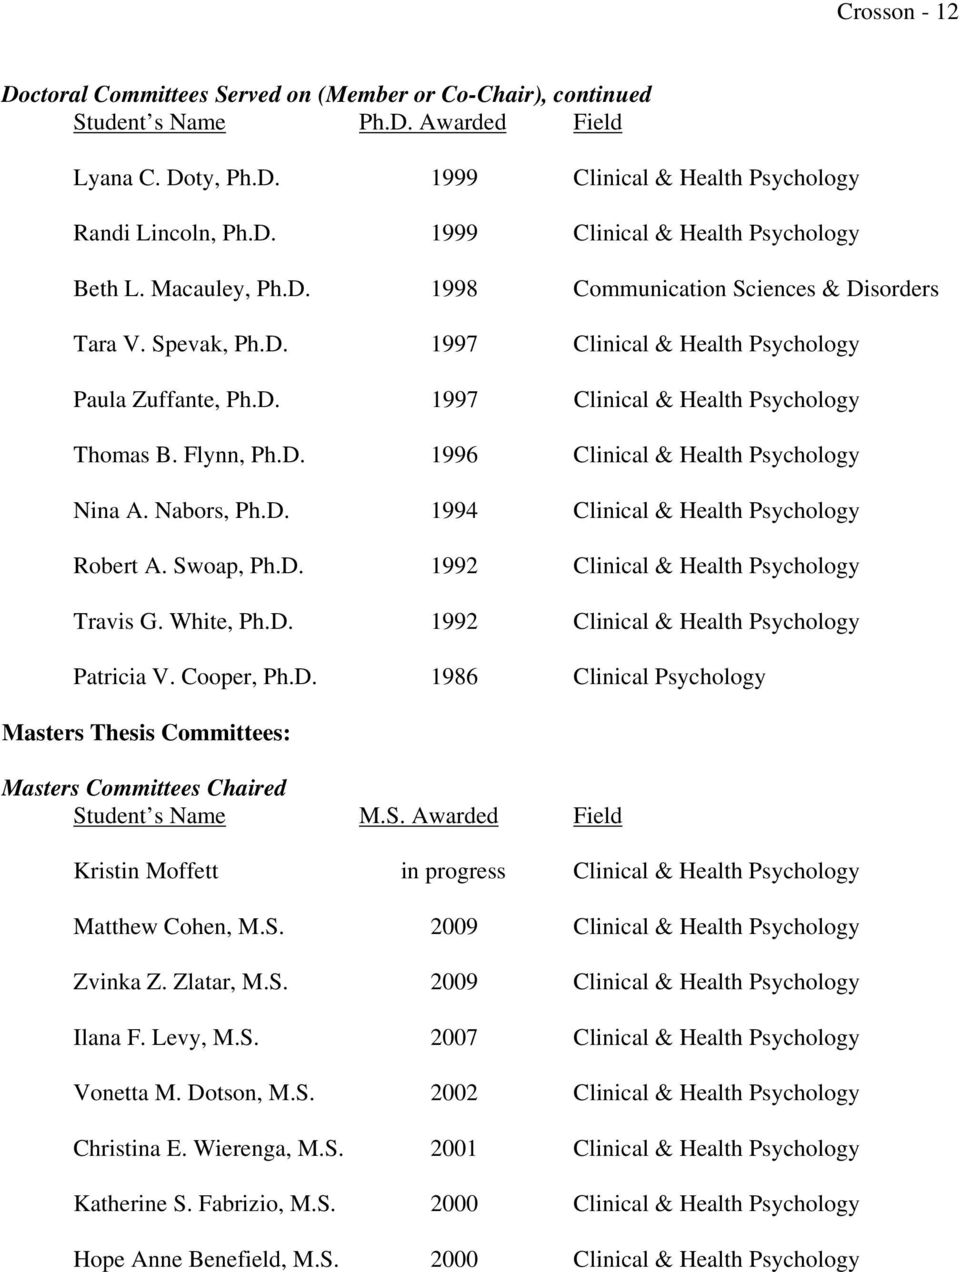 Nabors, Ph.D. 1994 Clinical & Health Psychology Robert A. Swoap, Ph.D. 1992 Clinical & Health Psychology Travis G. White, Ph.D. 1992 Clinical & Health Psychology Patricia V. Cooper, Ph.D. 1986 Clinical Psychology Masters Thesis Committees: Masters Committees Chaired Student s Name M.